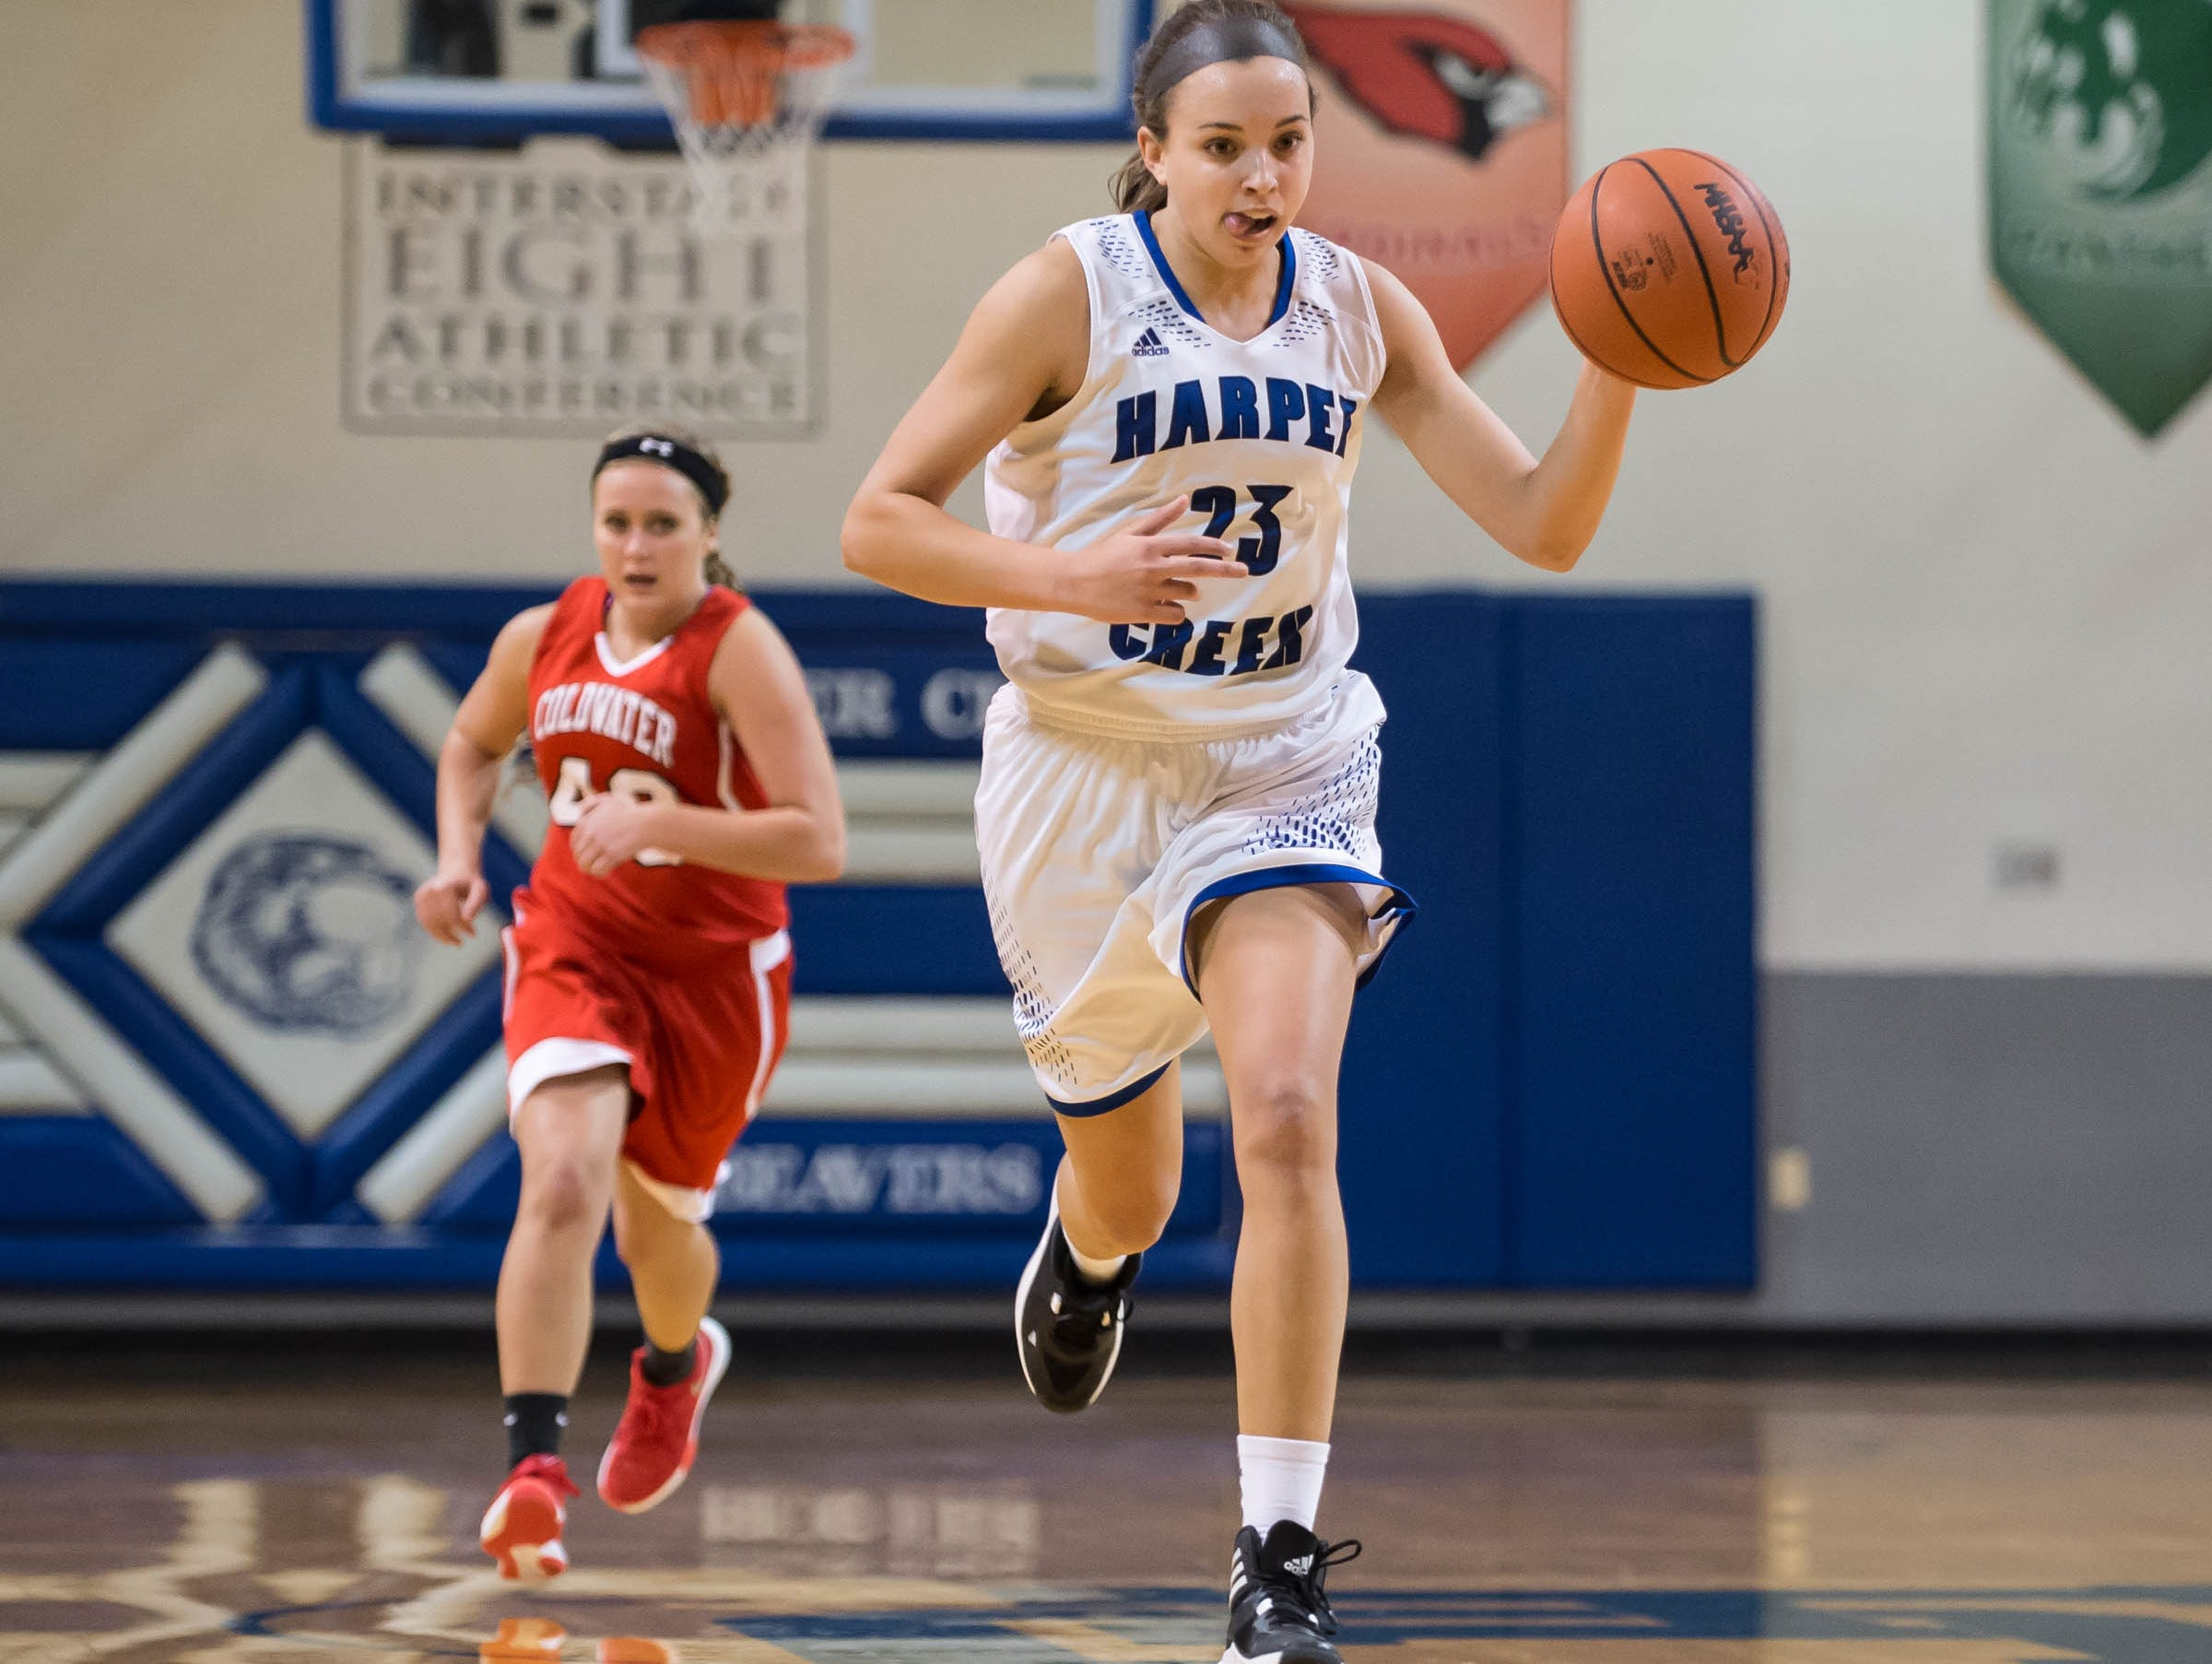 Harper Creek's Charley Andrews drives down the court against Coldwater in Friday evening's game.